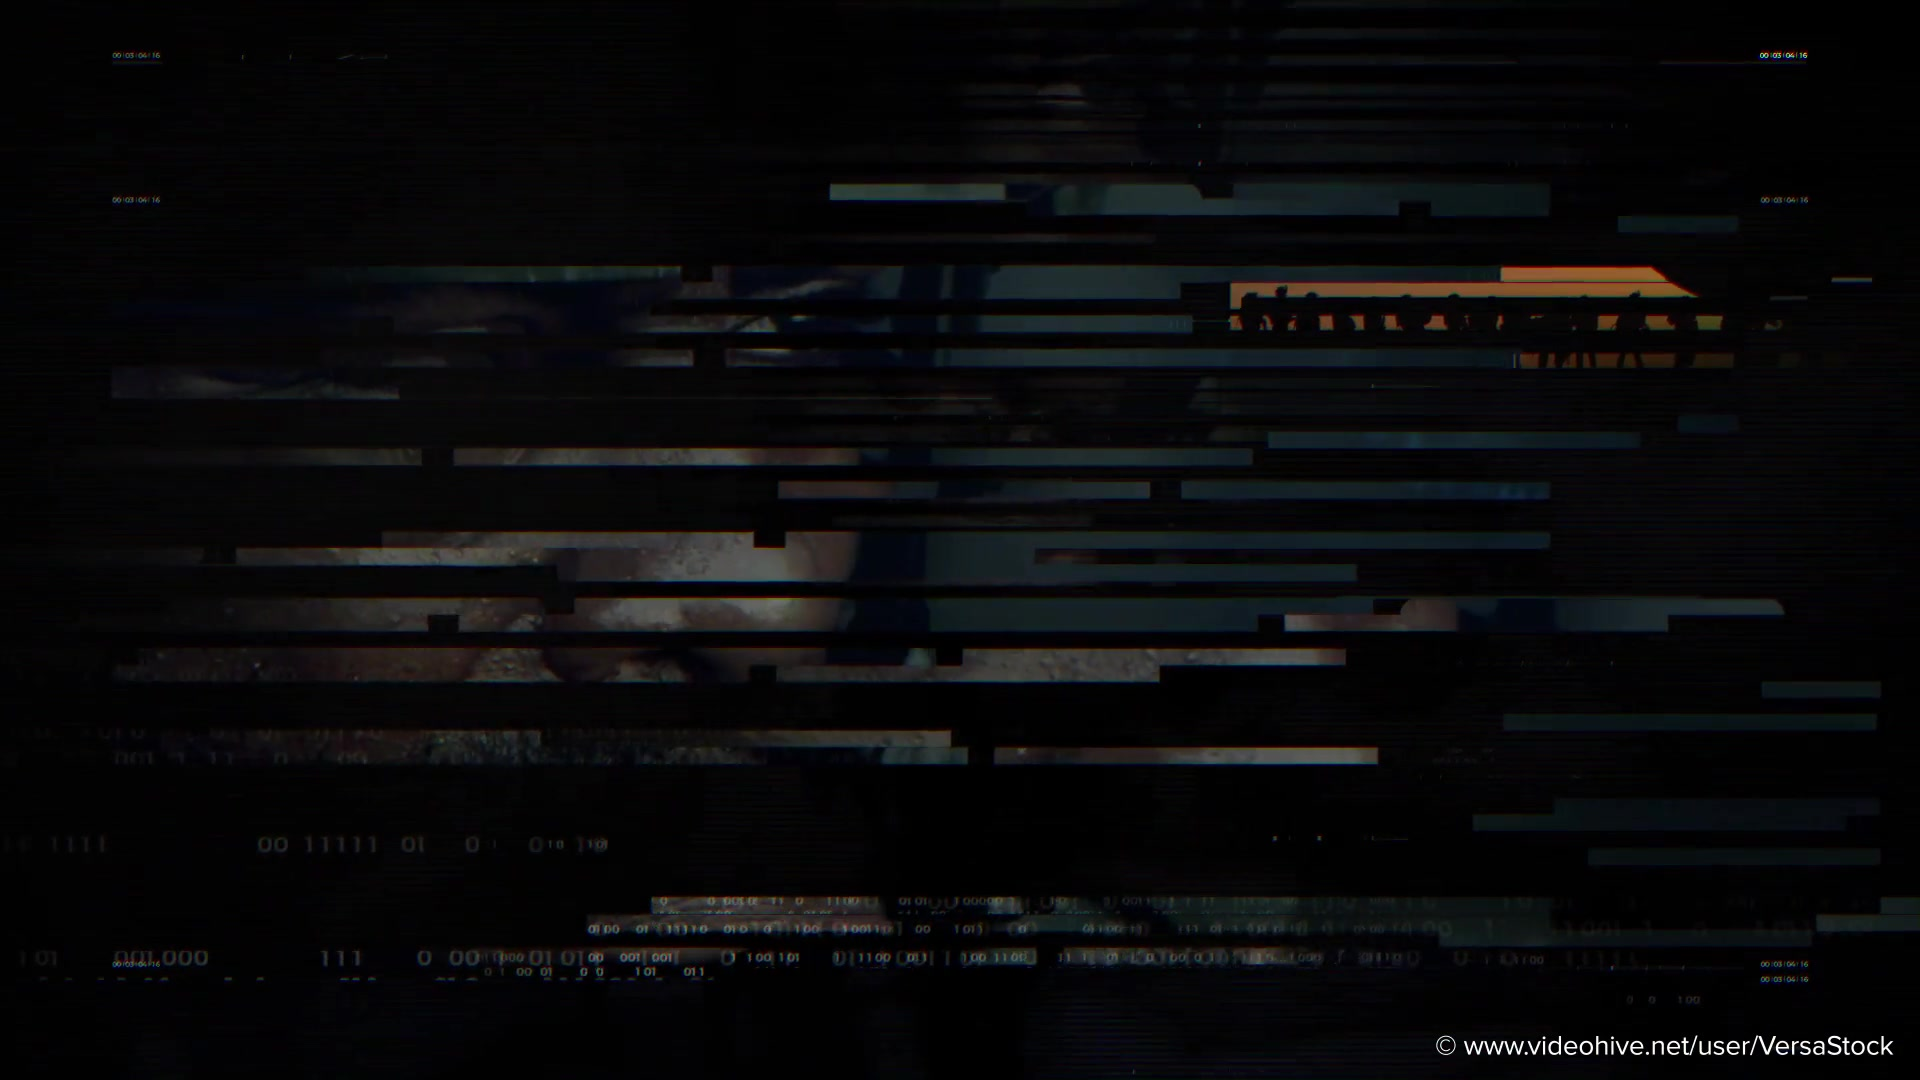 Resistance | Show Opening Title Sequence - Download Videohive 21475170